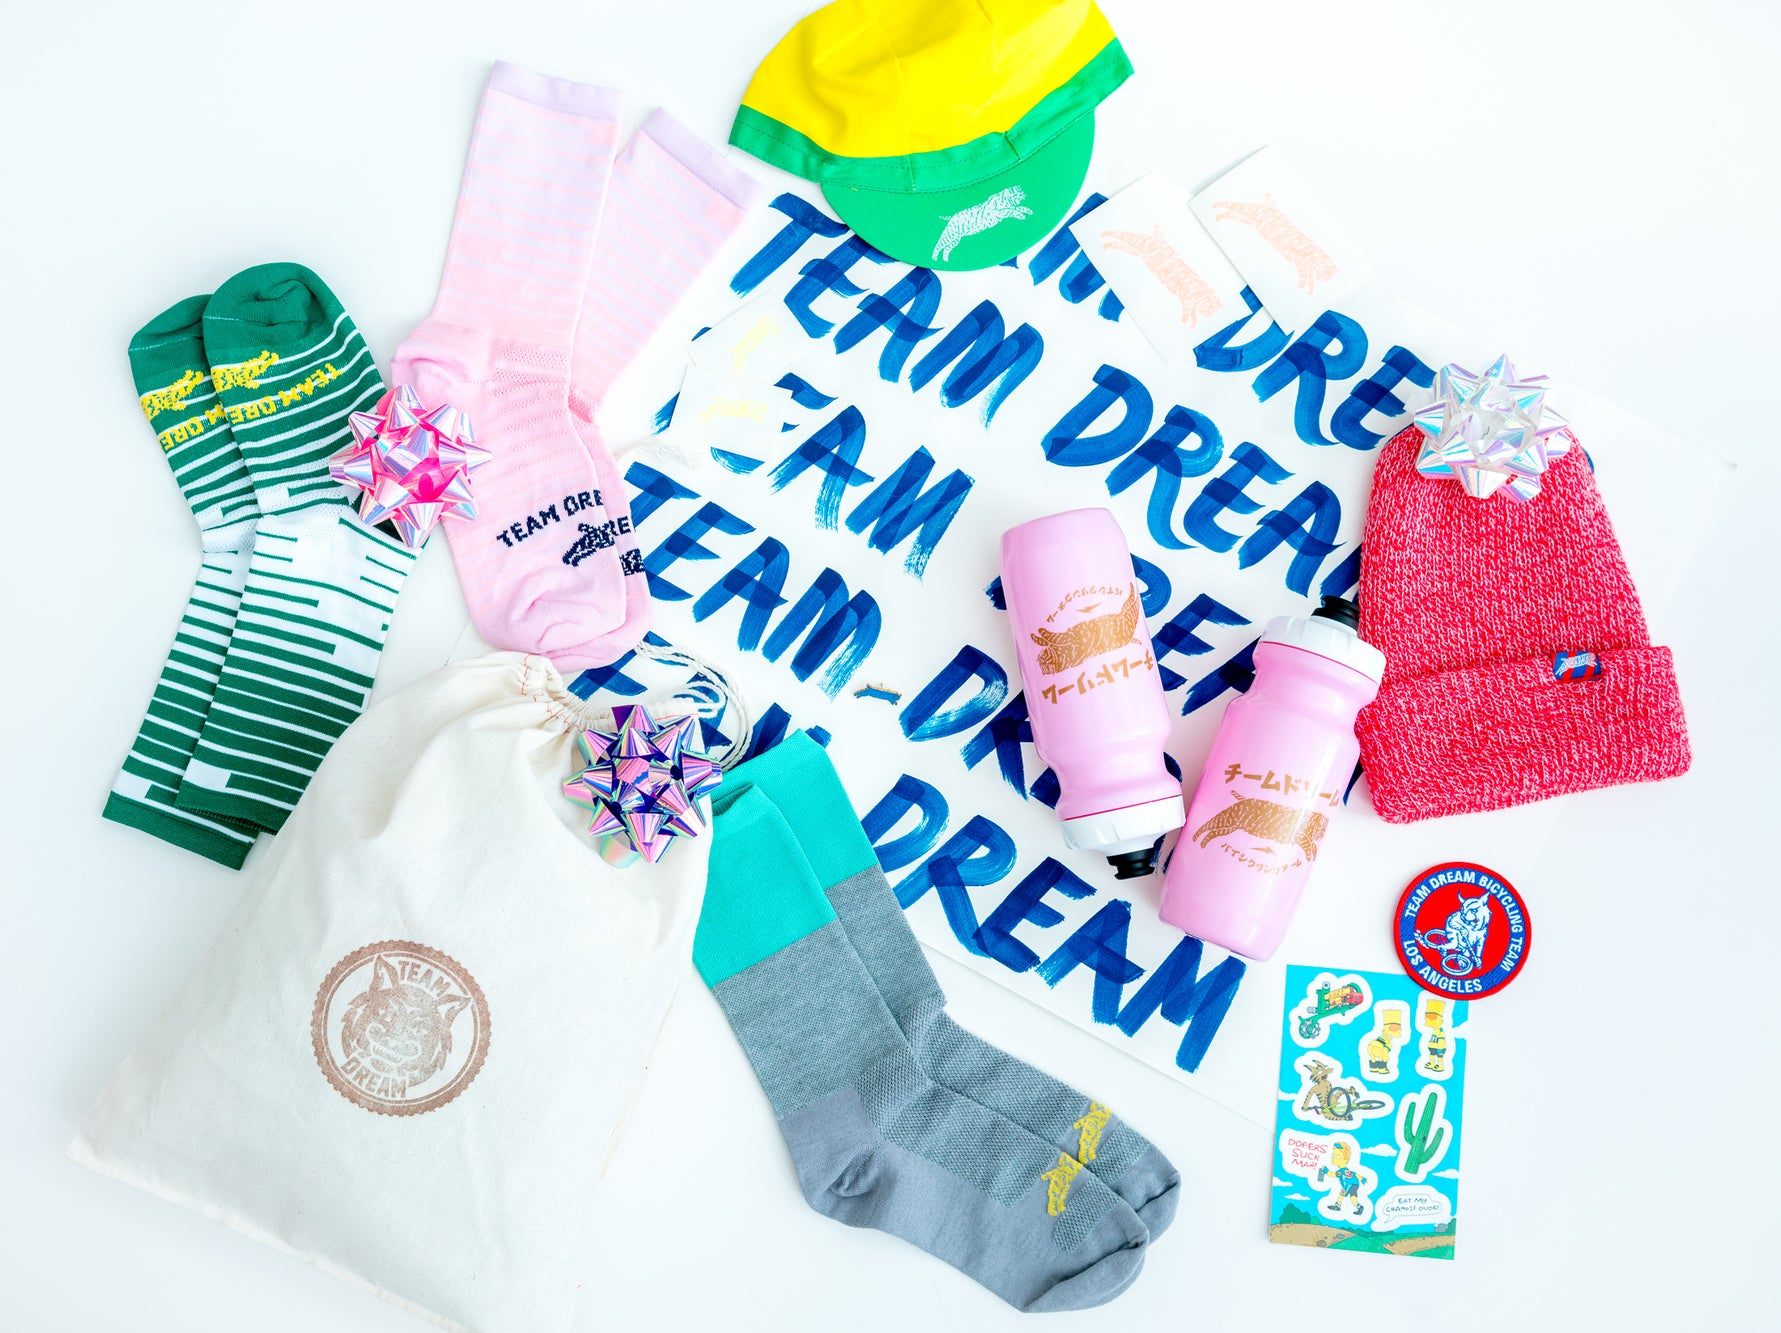 Team Dream Holiday Bundles